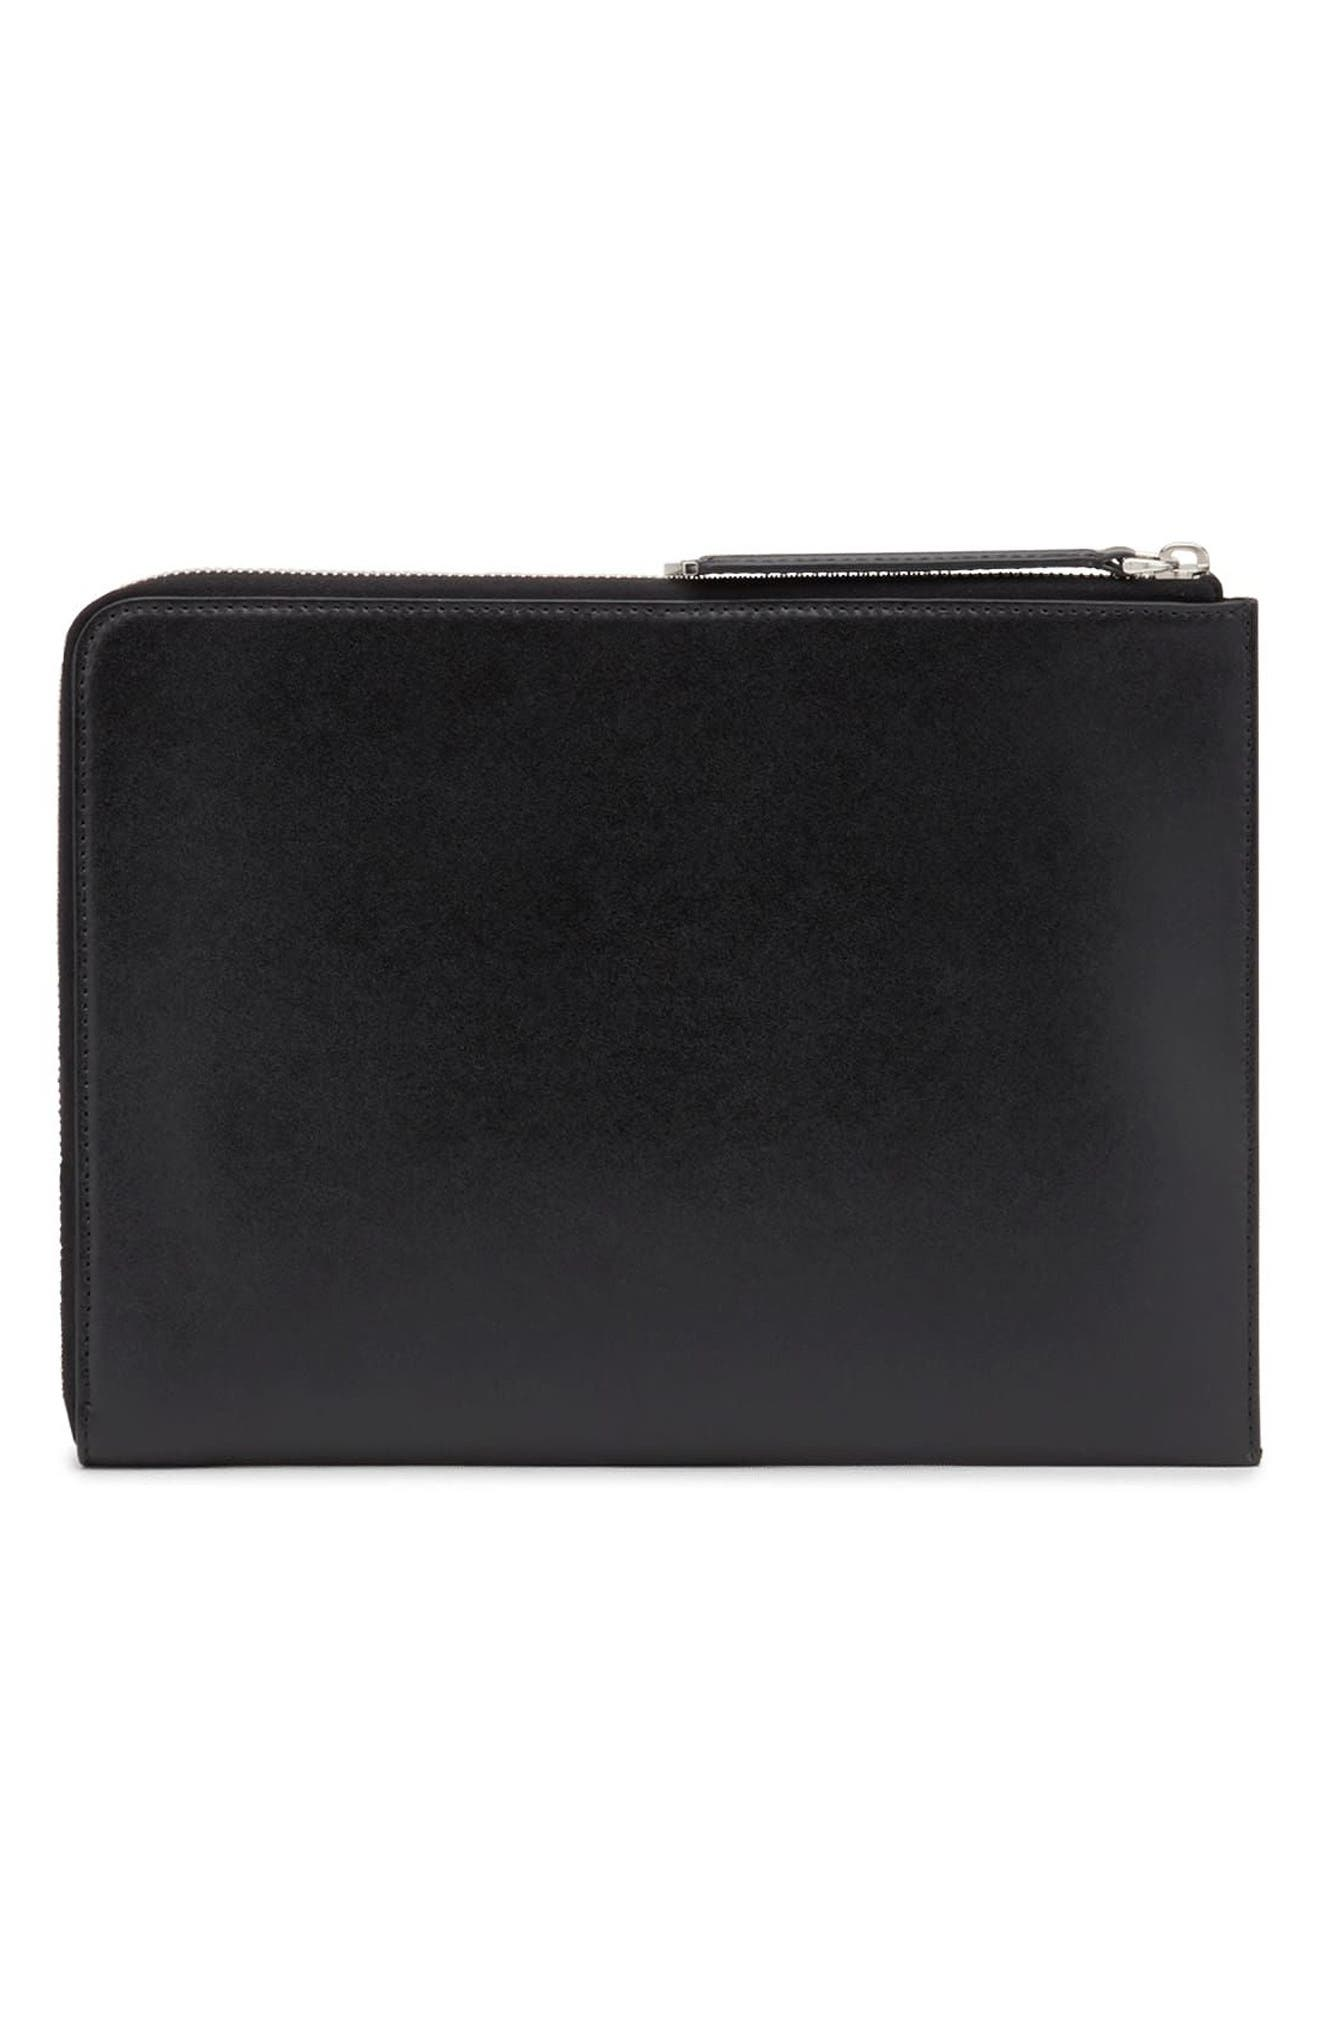 Logo Studded RFID Leather Zip Pouch,                             Alternate thumbnail 3, color,                             001